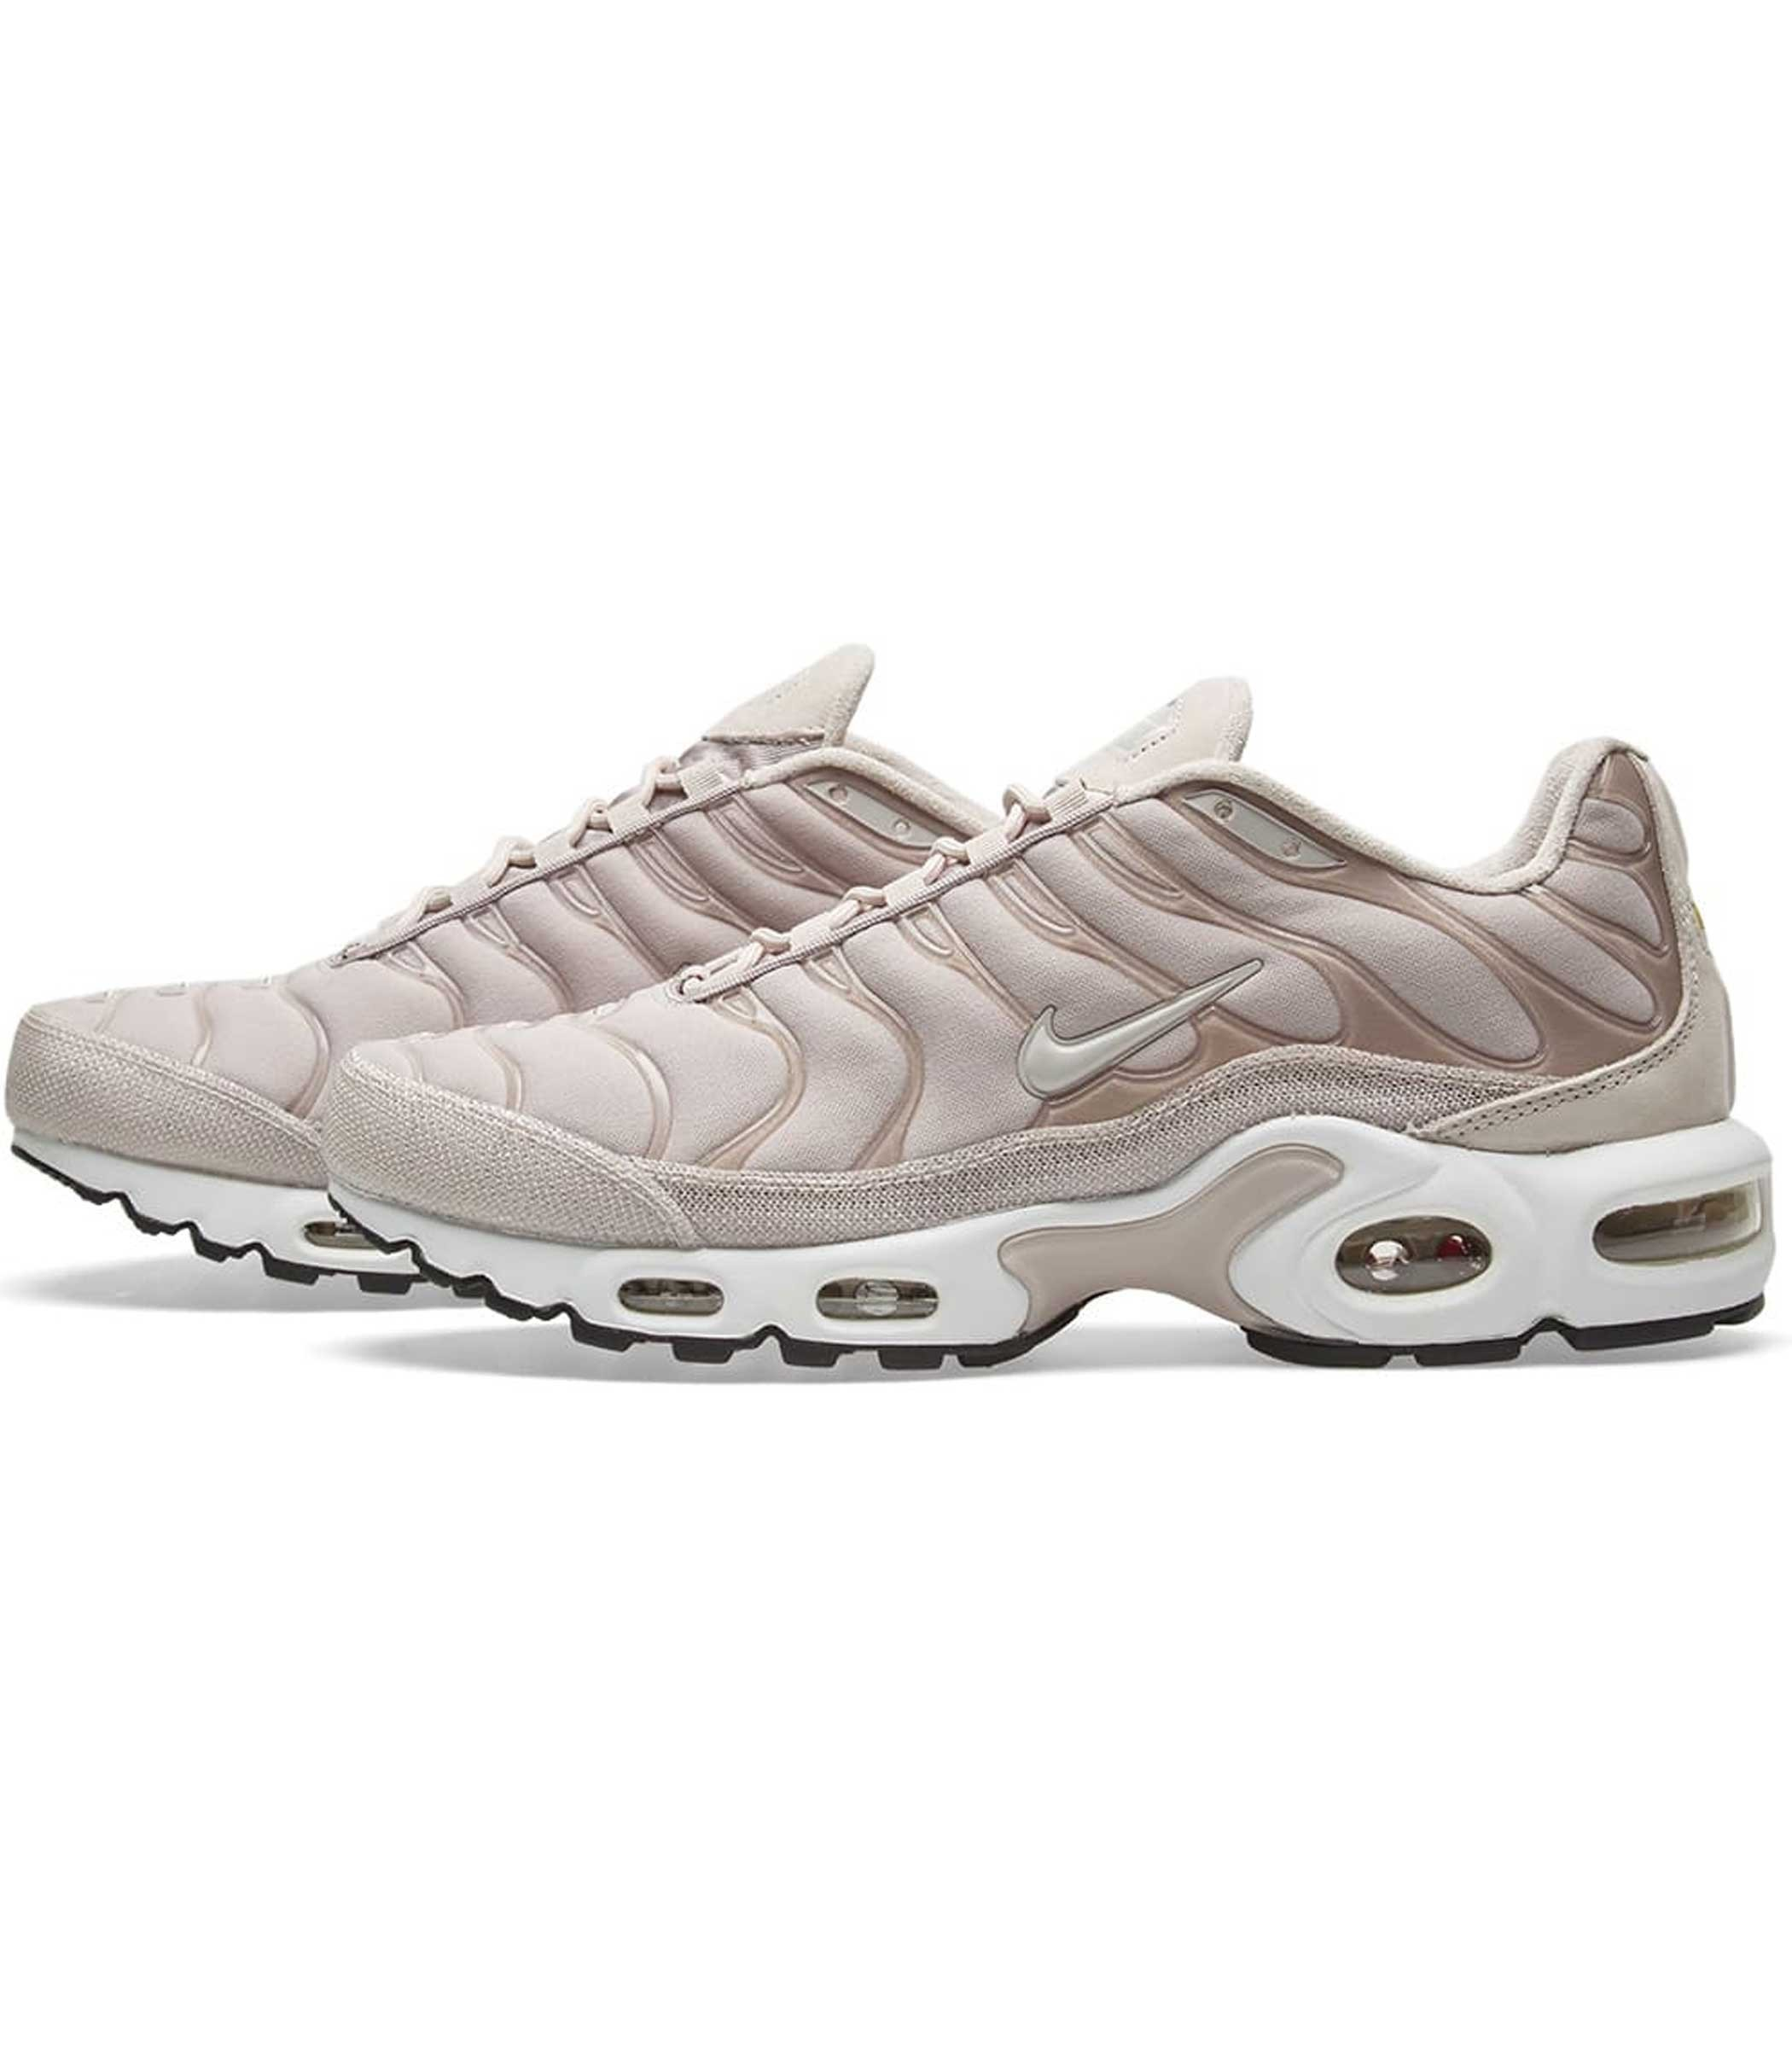 Amp; Amp; Amp; Plus Calzature per Air Max donna Nike Accessori vxqRxaUd in   aa59e6